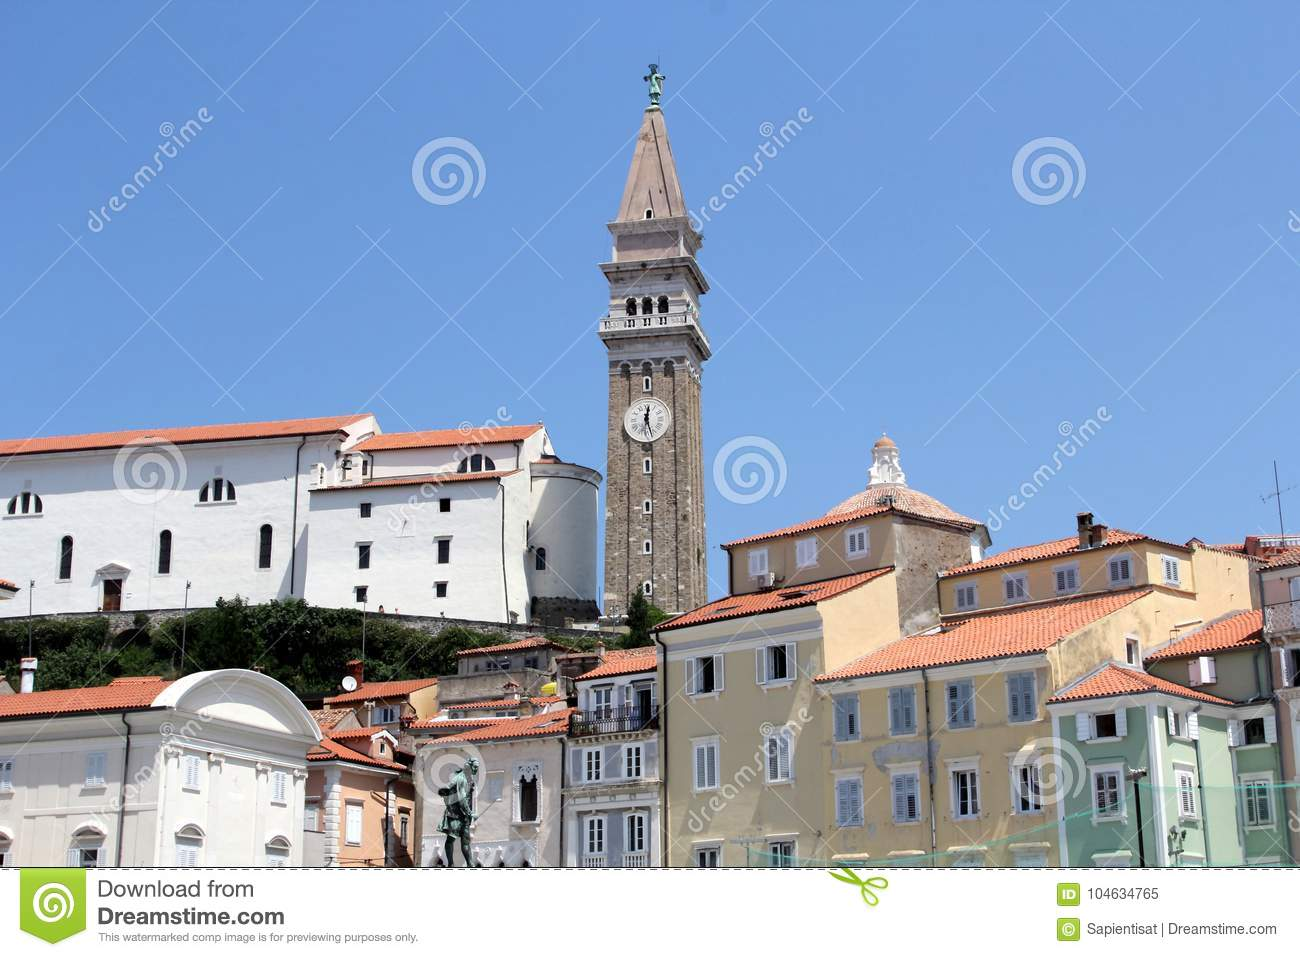 Historic architecture of Piran, Slovenia.